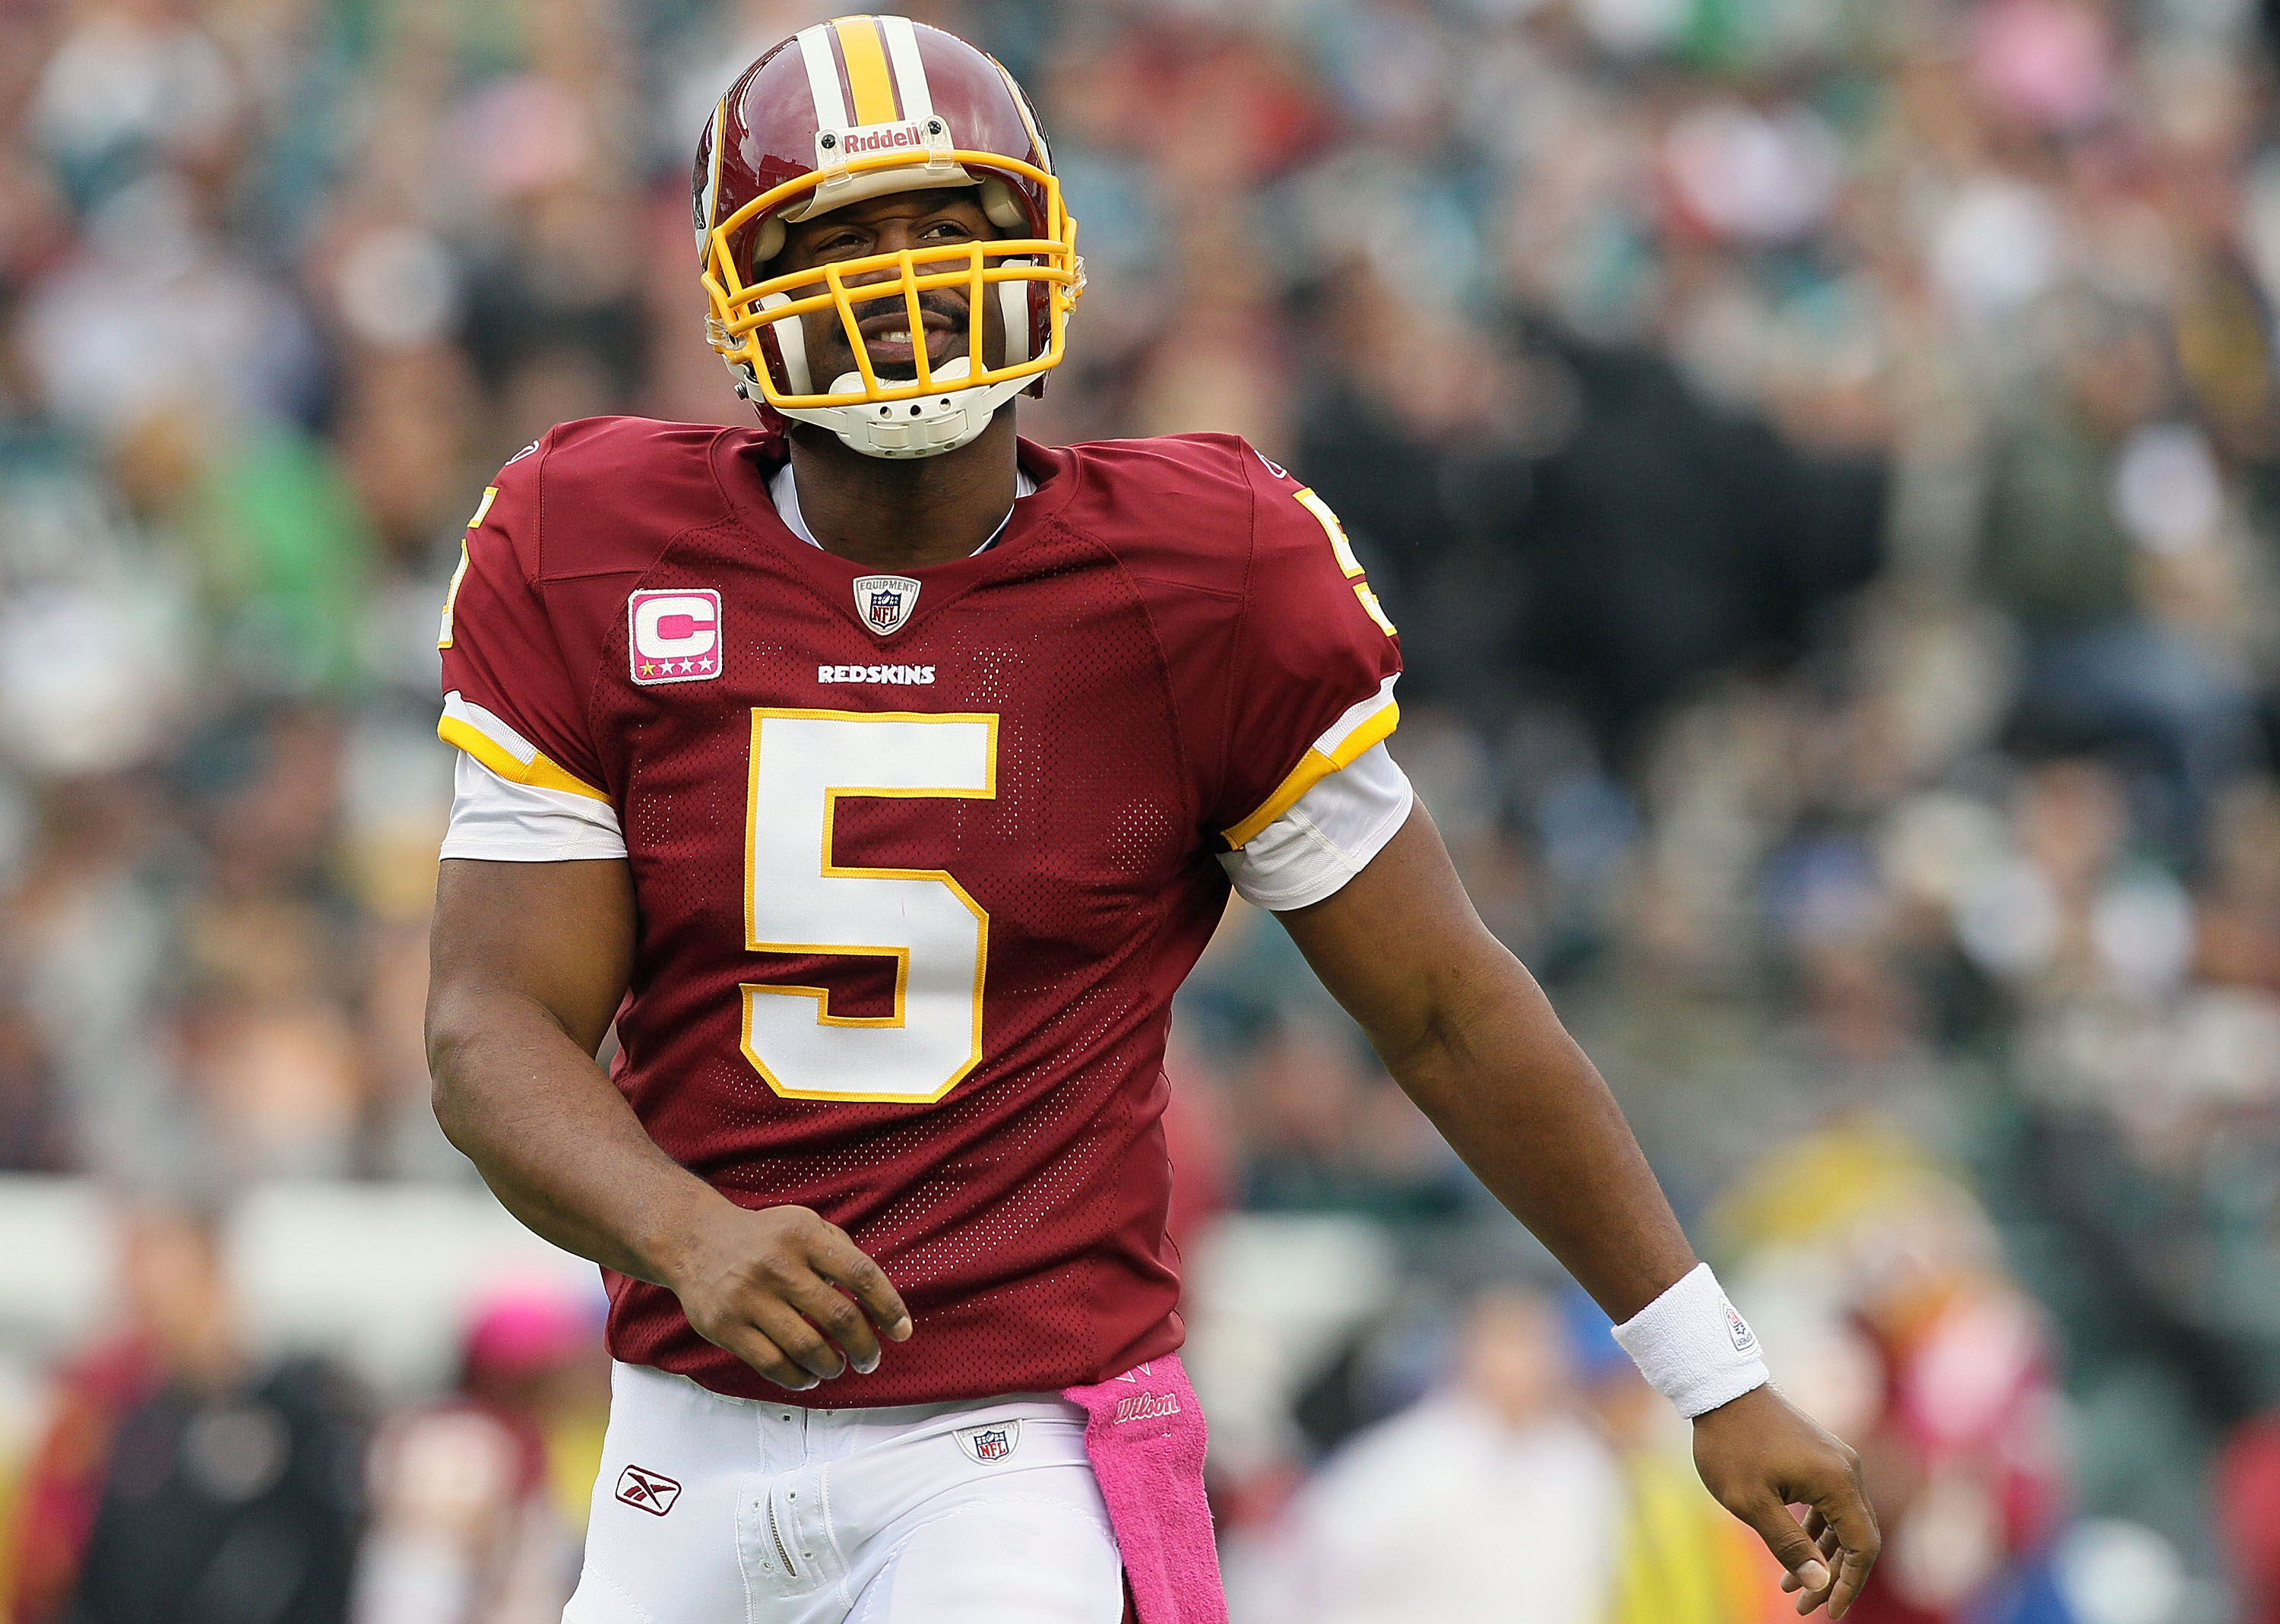 McNabb helps the uni's look a little better in the win column.